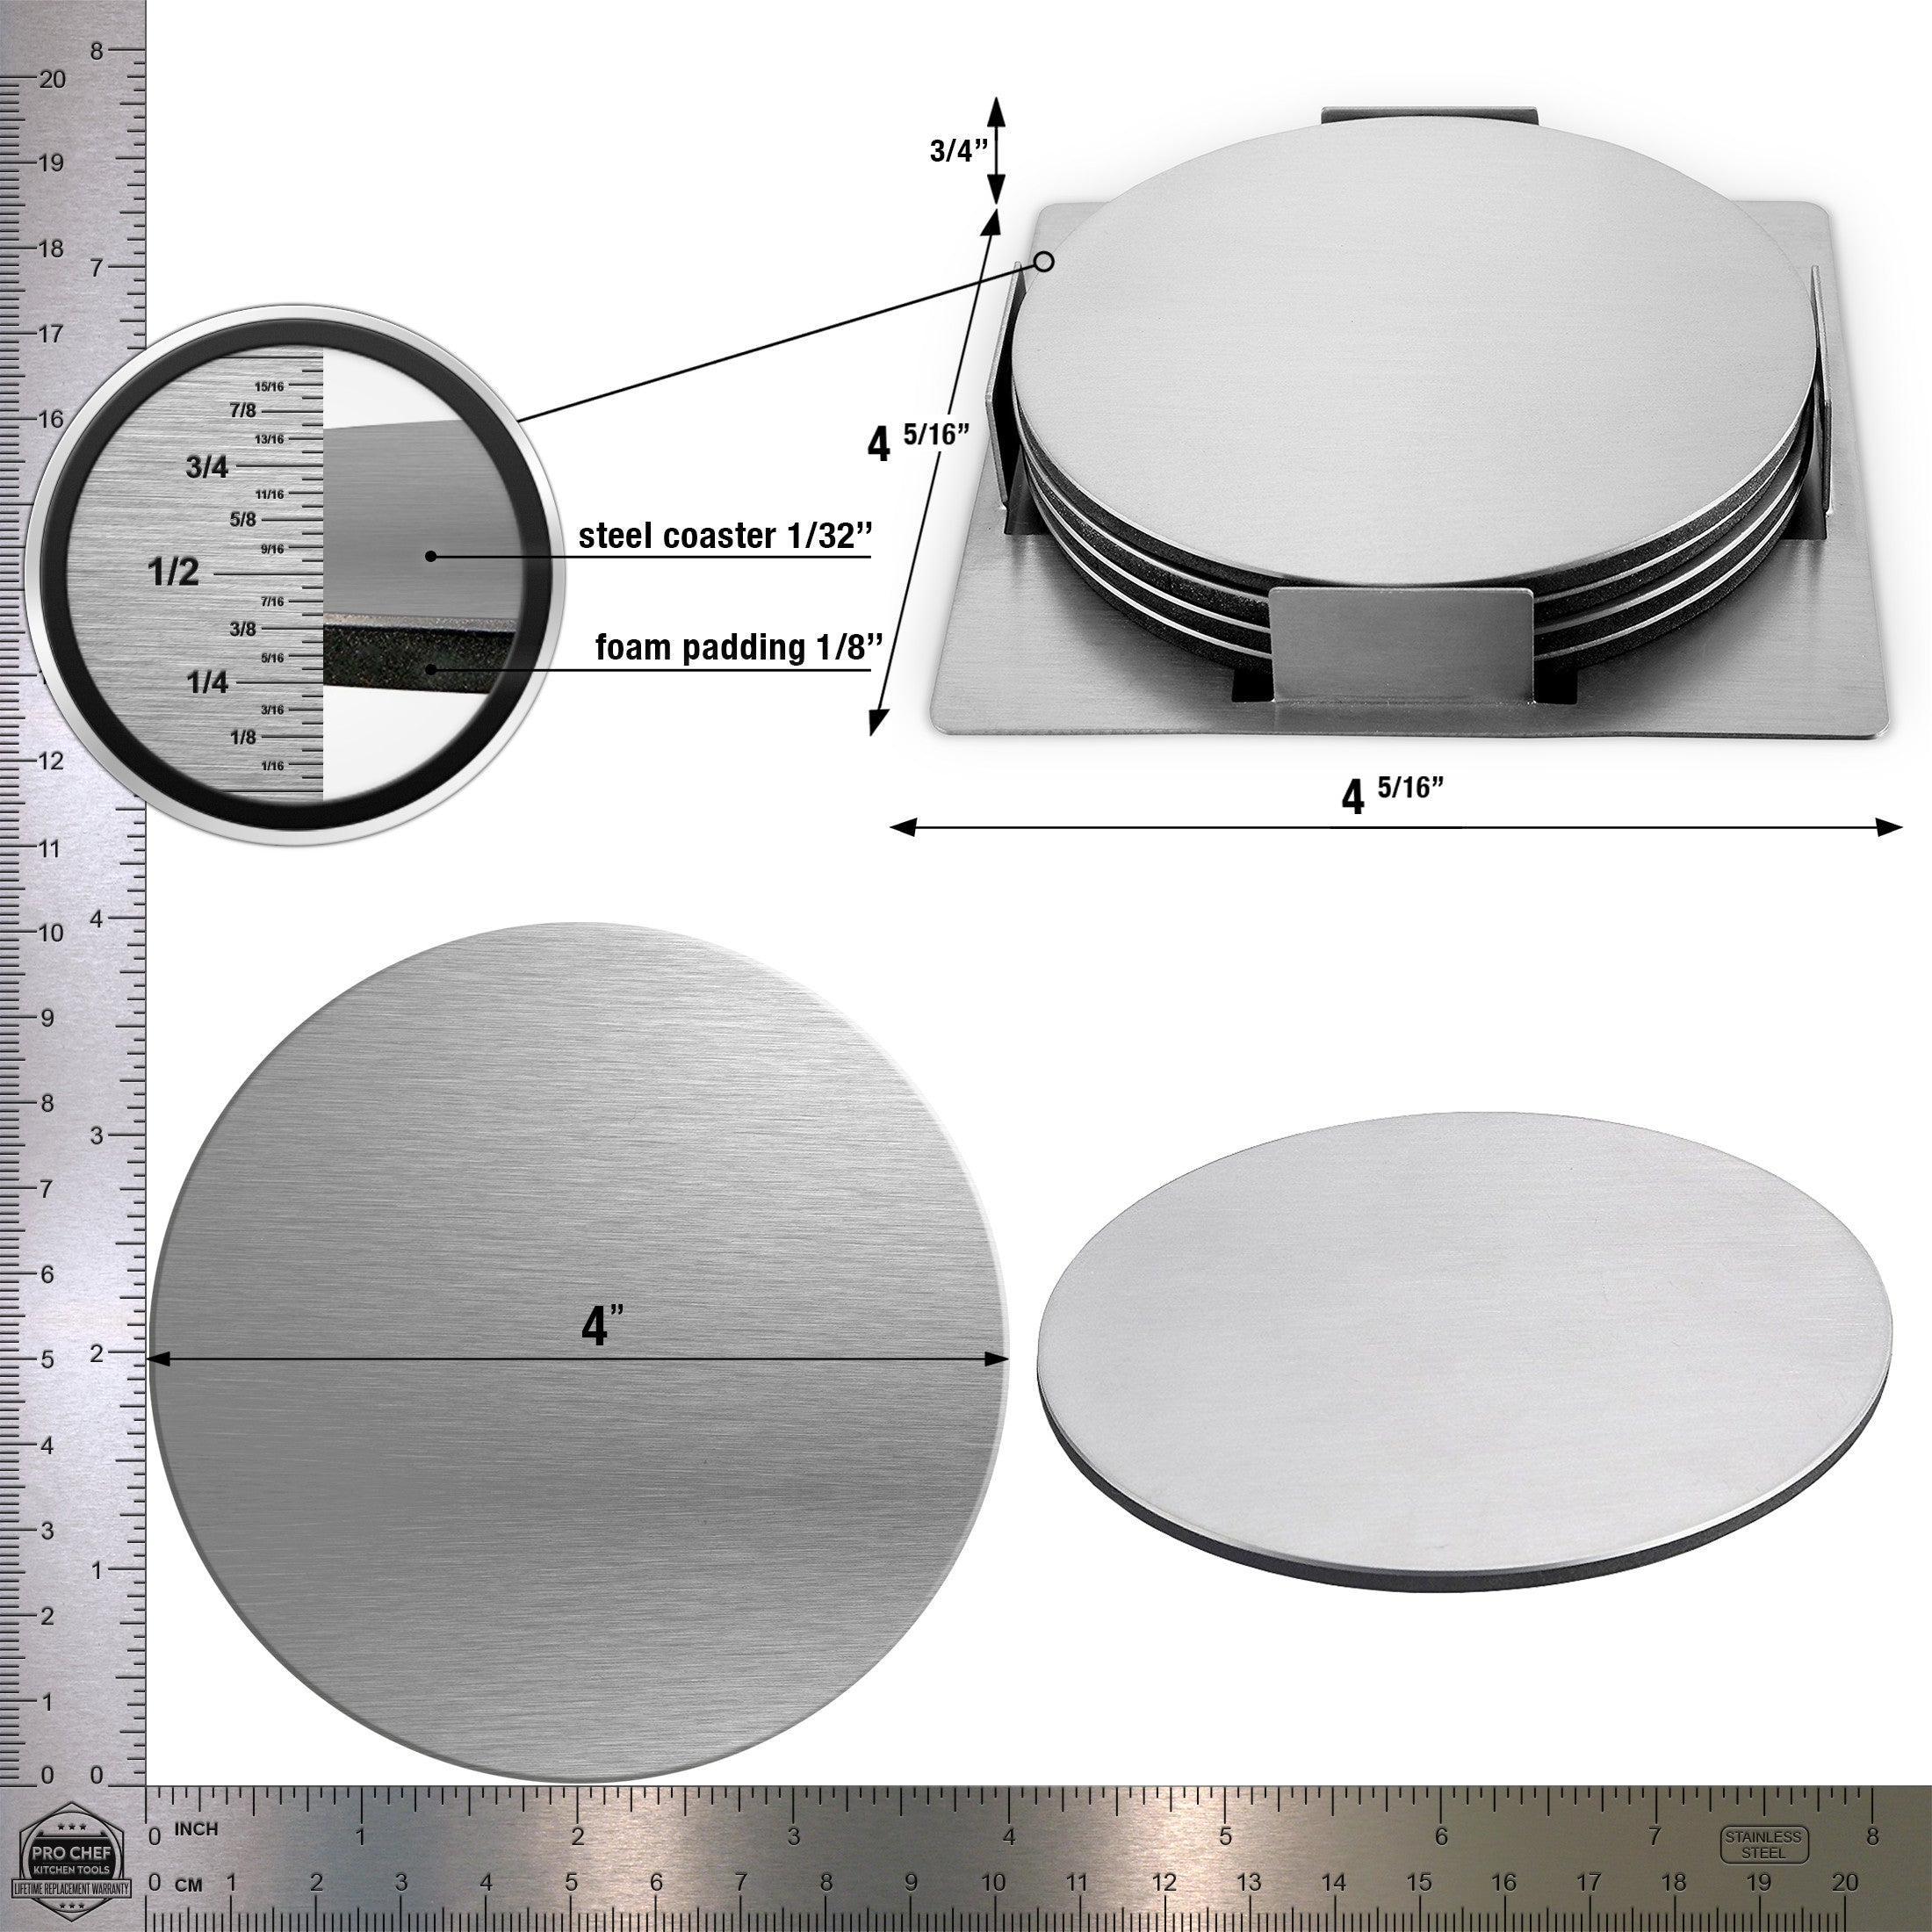 Pro Chef Kitchen Tools Stainless Steel Beverage Coaster Set   Set Of 4  Round Table Coasters To Prevent Tabletop Stains And Scratches From Glasses,  ...